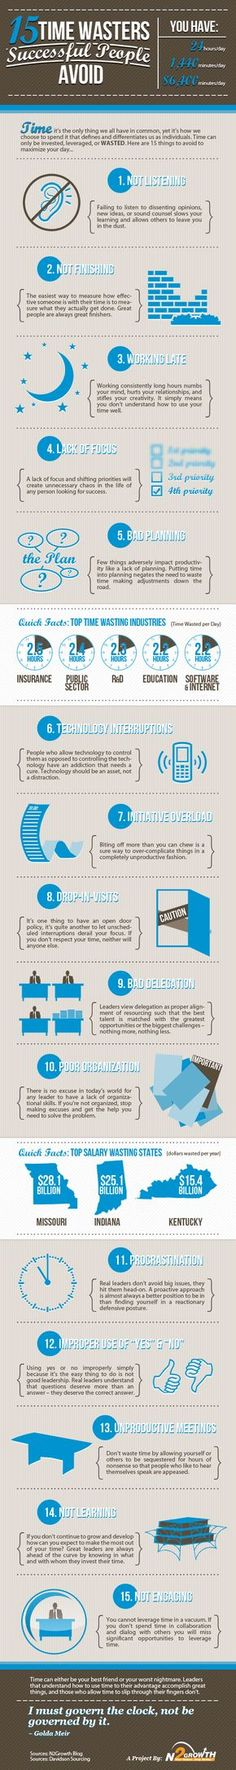 Coaching  -  15 time wasters successful people avoid - INFOGRAPHIC